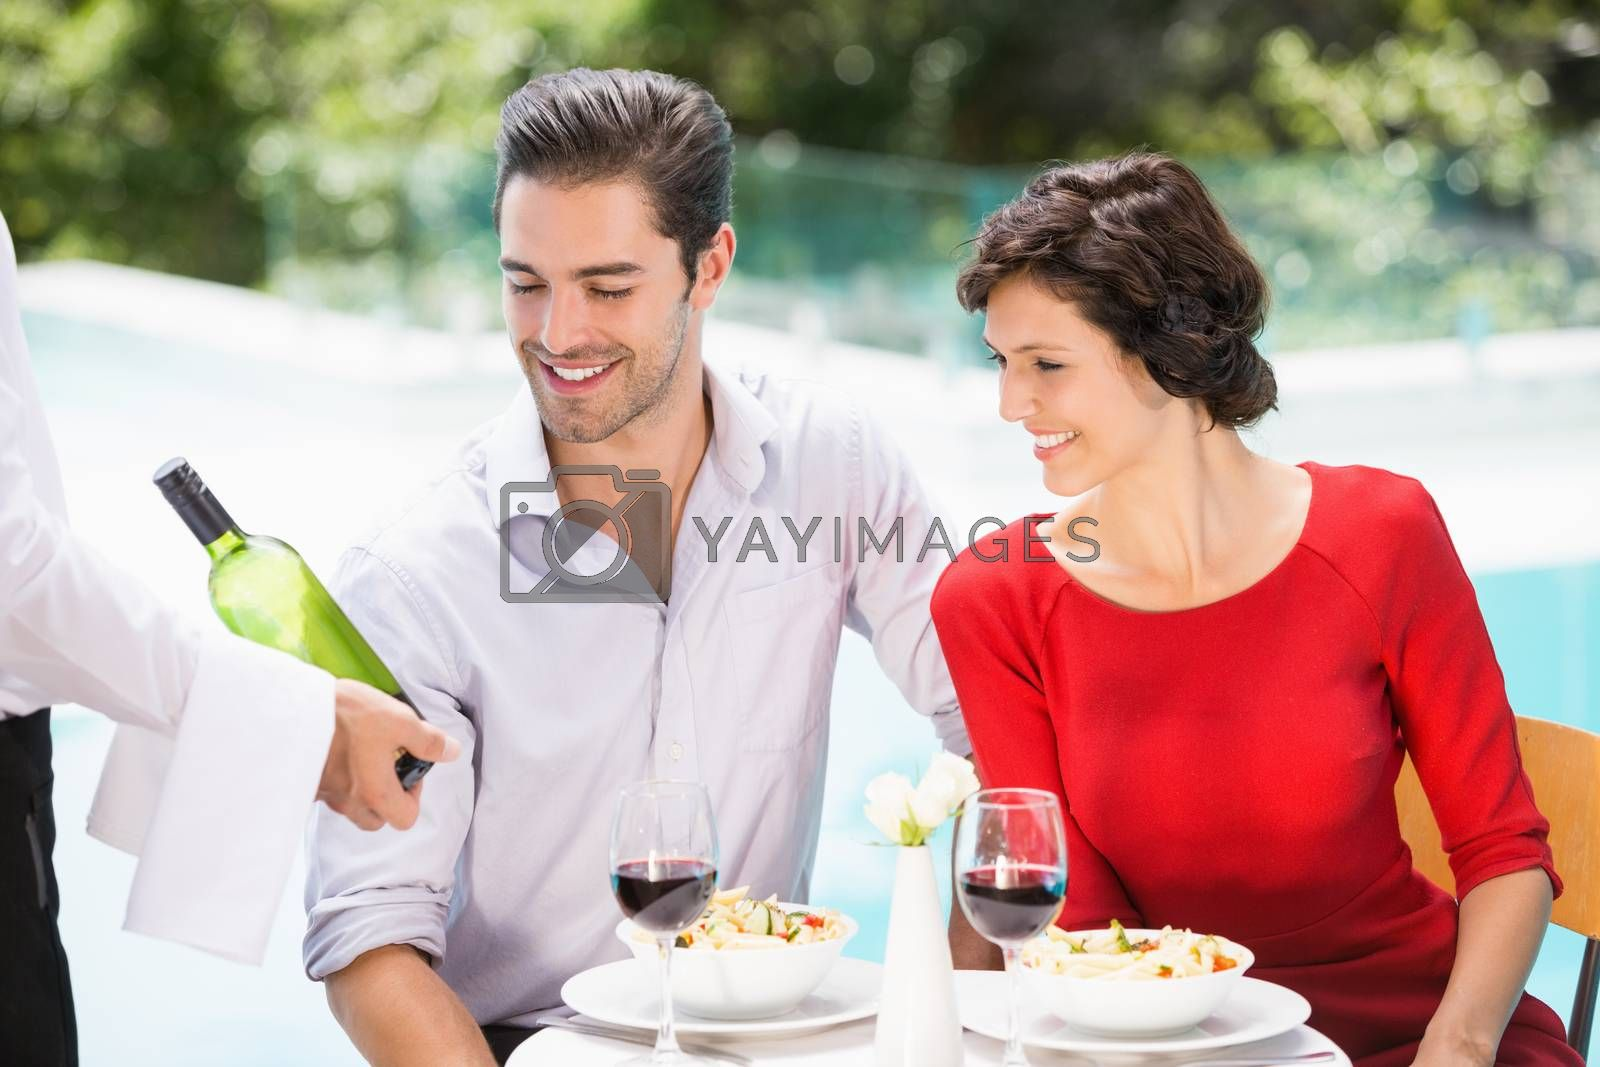 Waiter showing wine bottle to couple at poolside